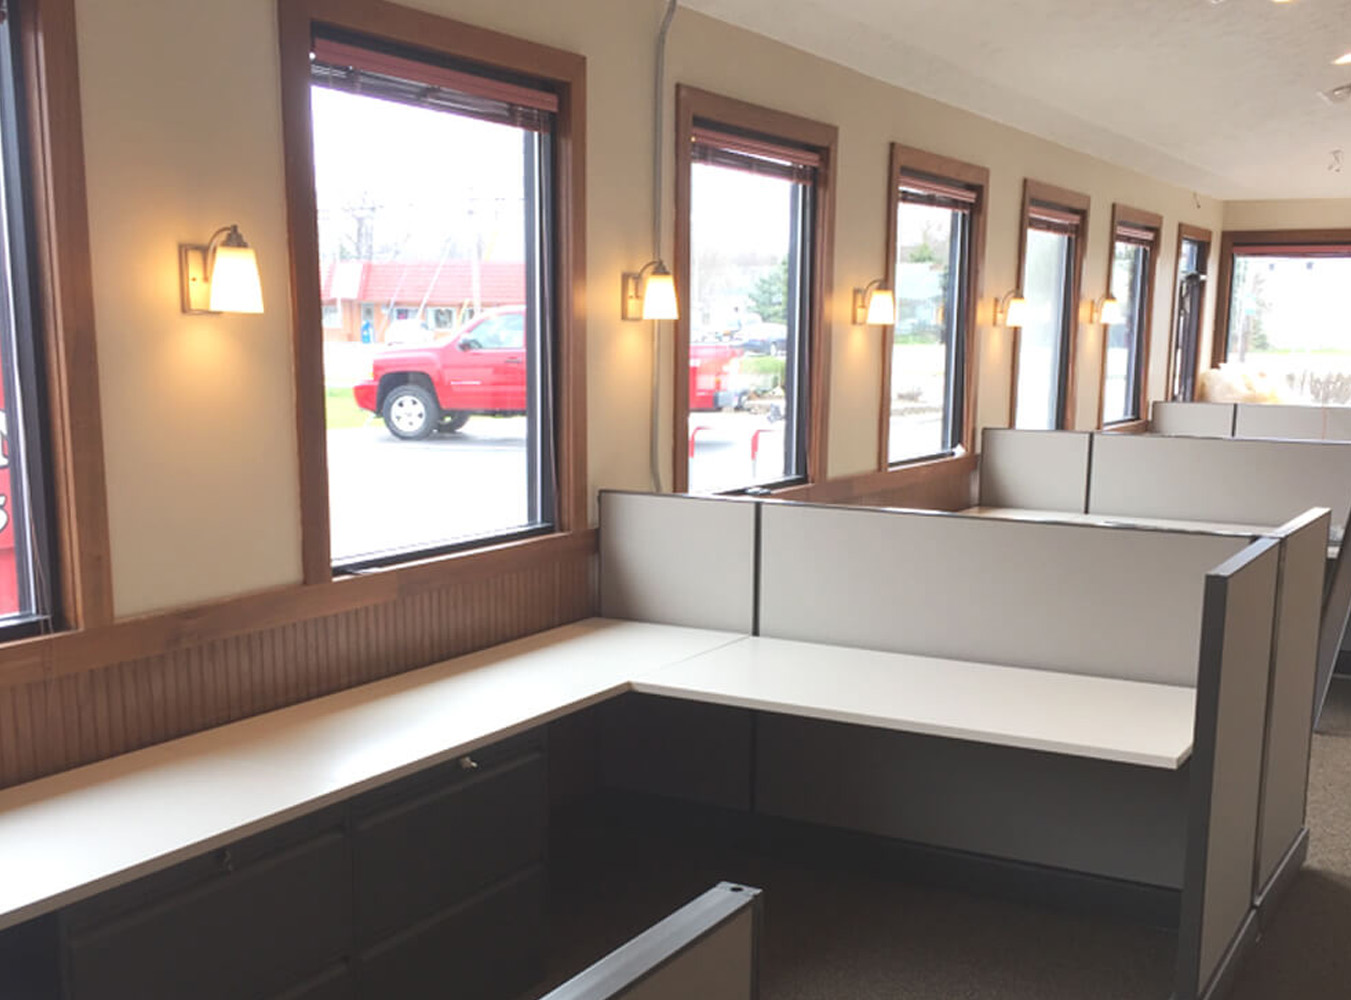 Office design furniture installation in lorain oh for for Office design journal